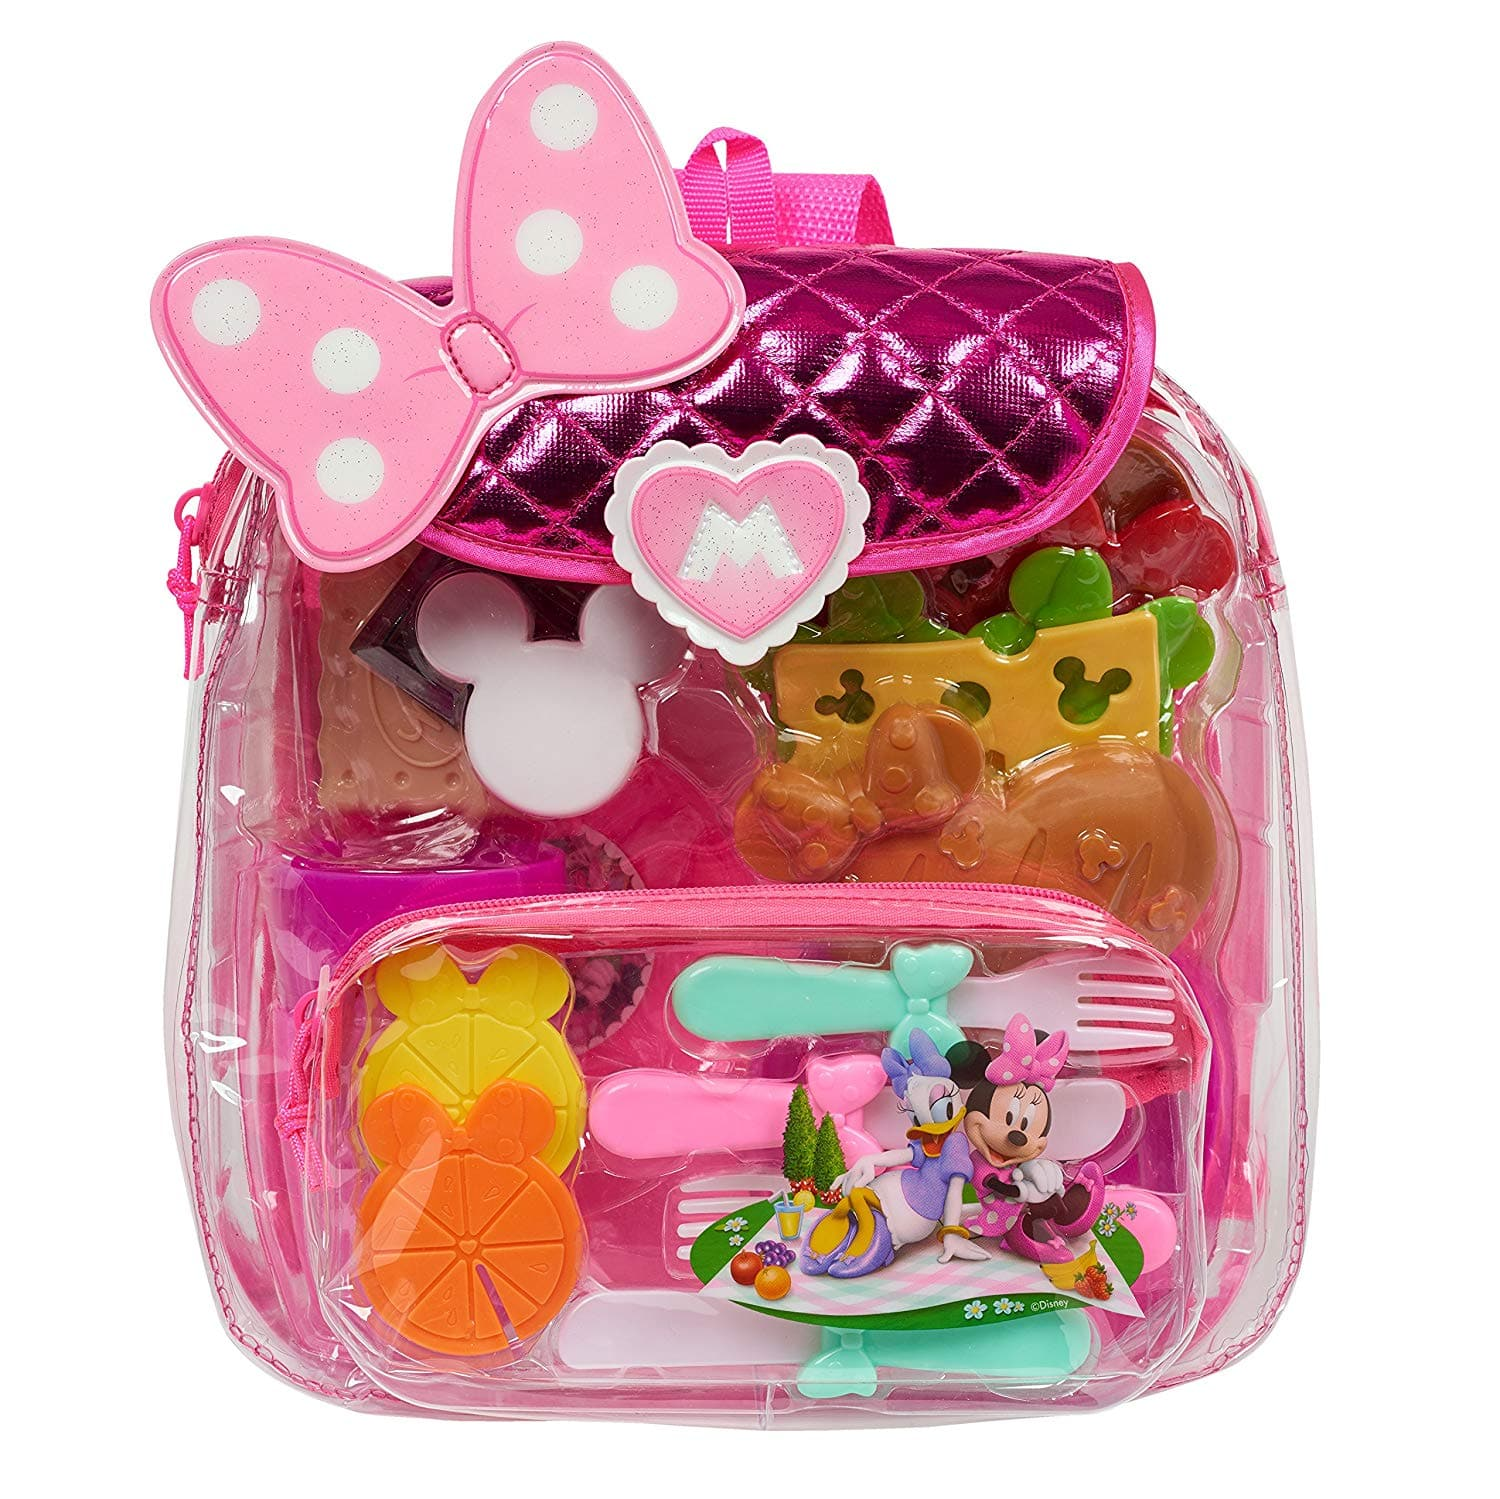 Minnie Happy Helpers Backpack Picnic Set-Amazon Add On $3.66